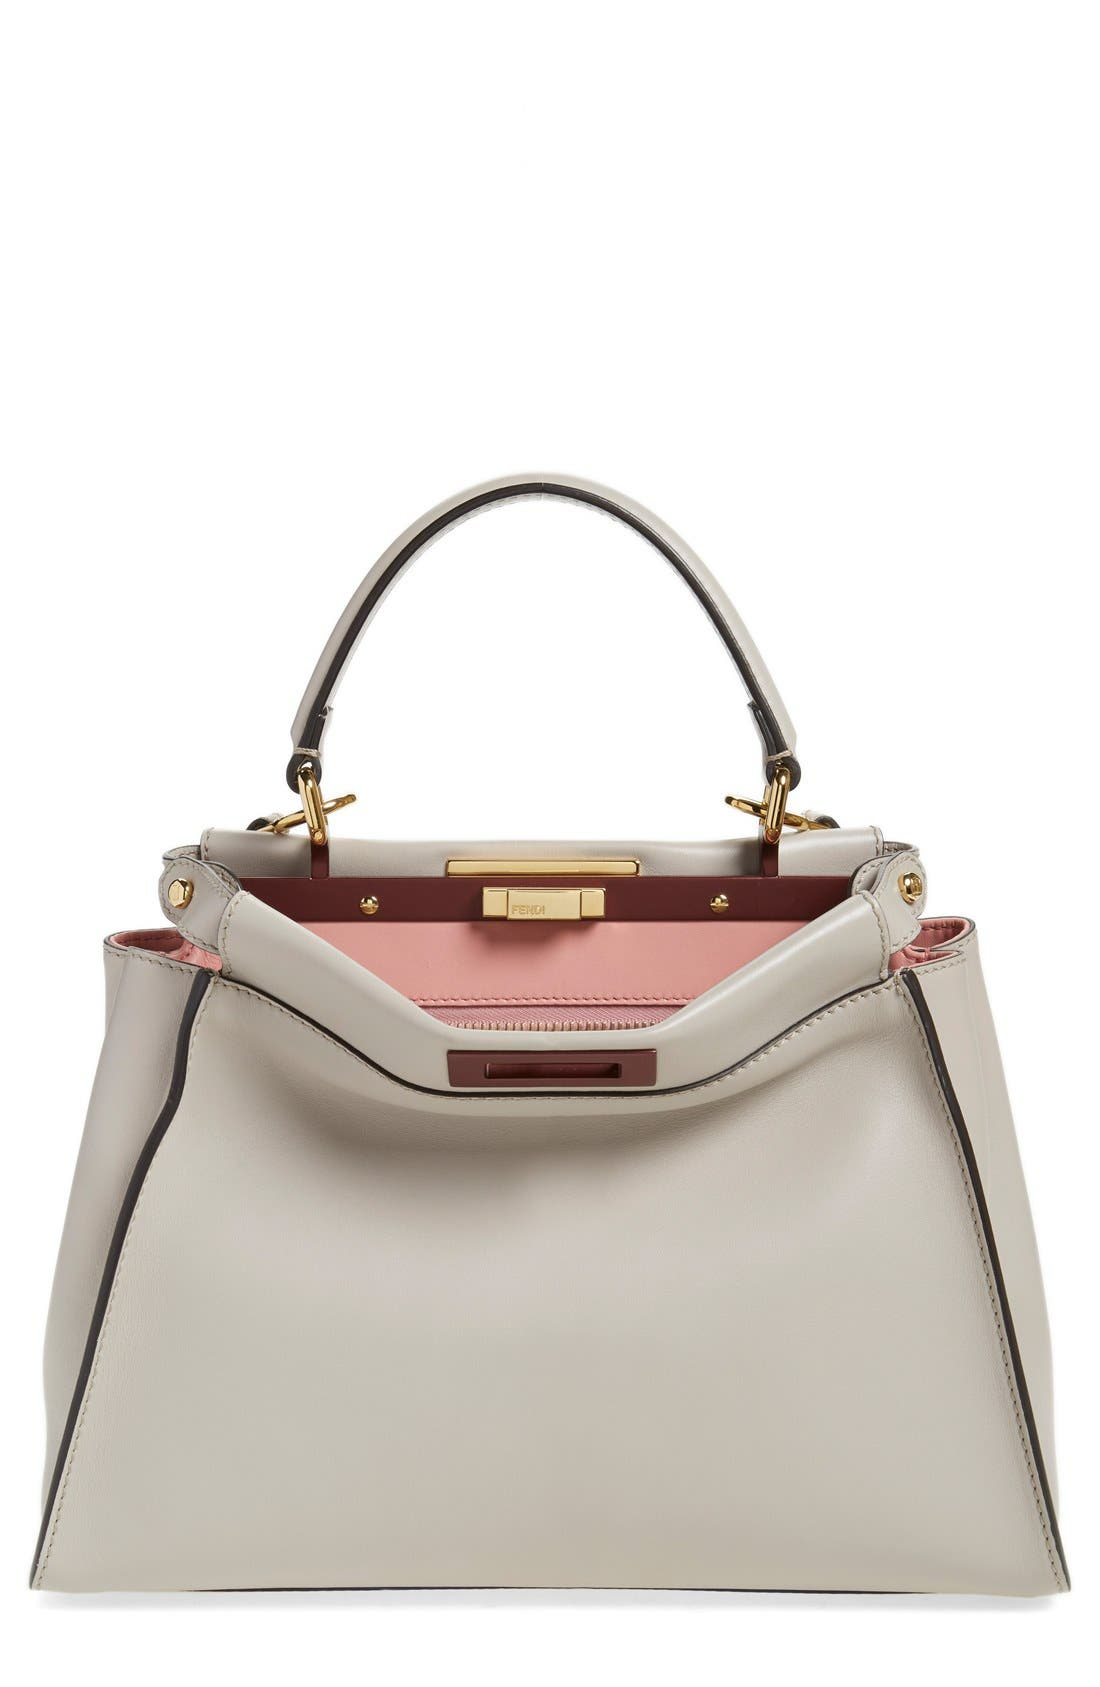 FENDI 'Peek-A-Boo' Medium Crossbody Bag